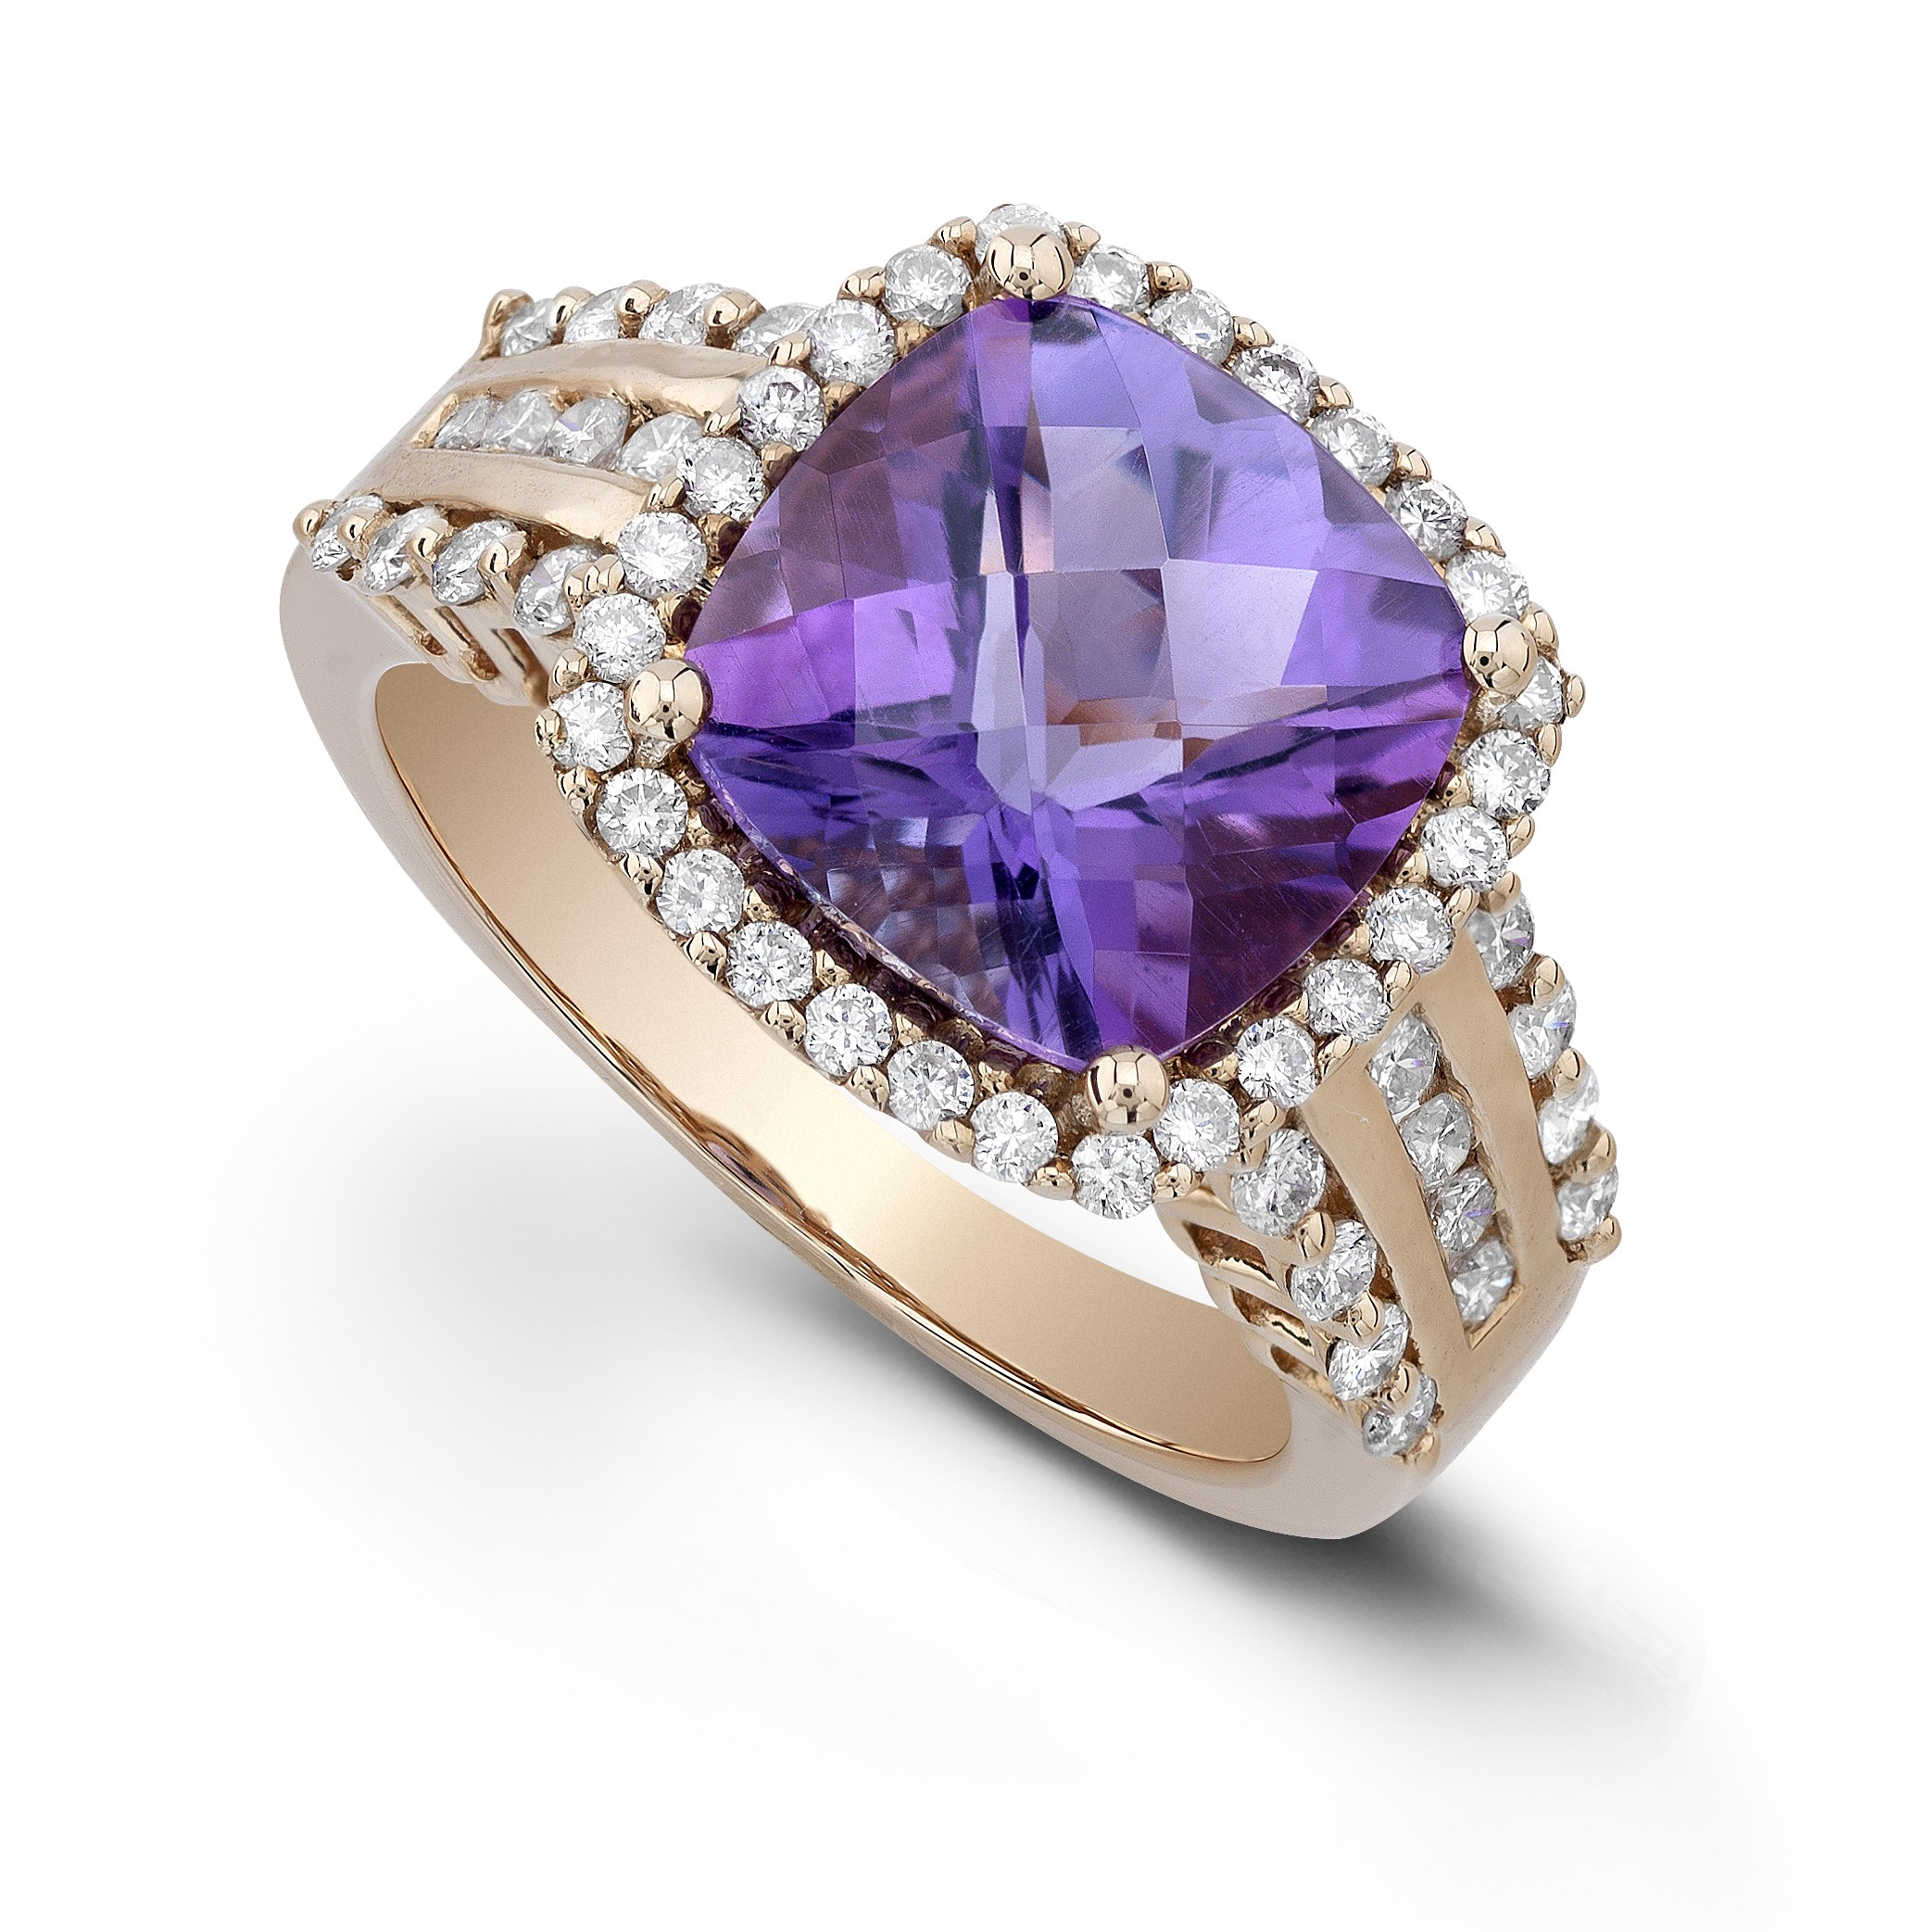 engagement pear shape design amethyst products yellow and image amethist diamond size ring manari rings gold